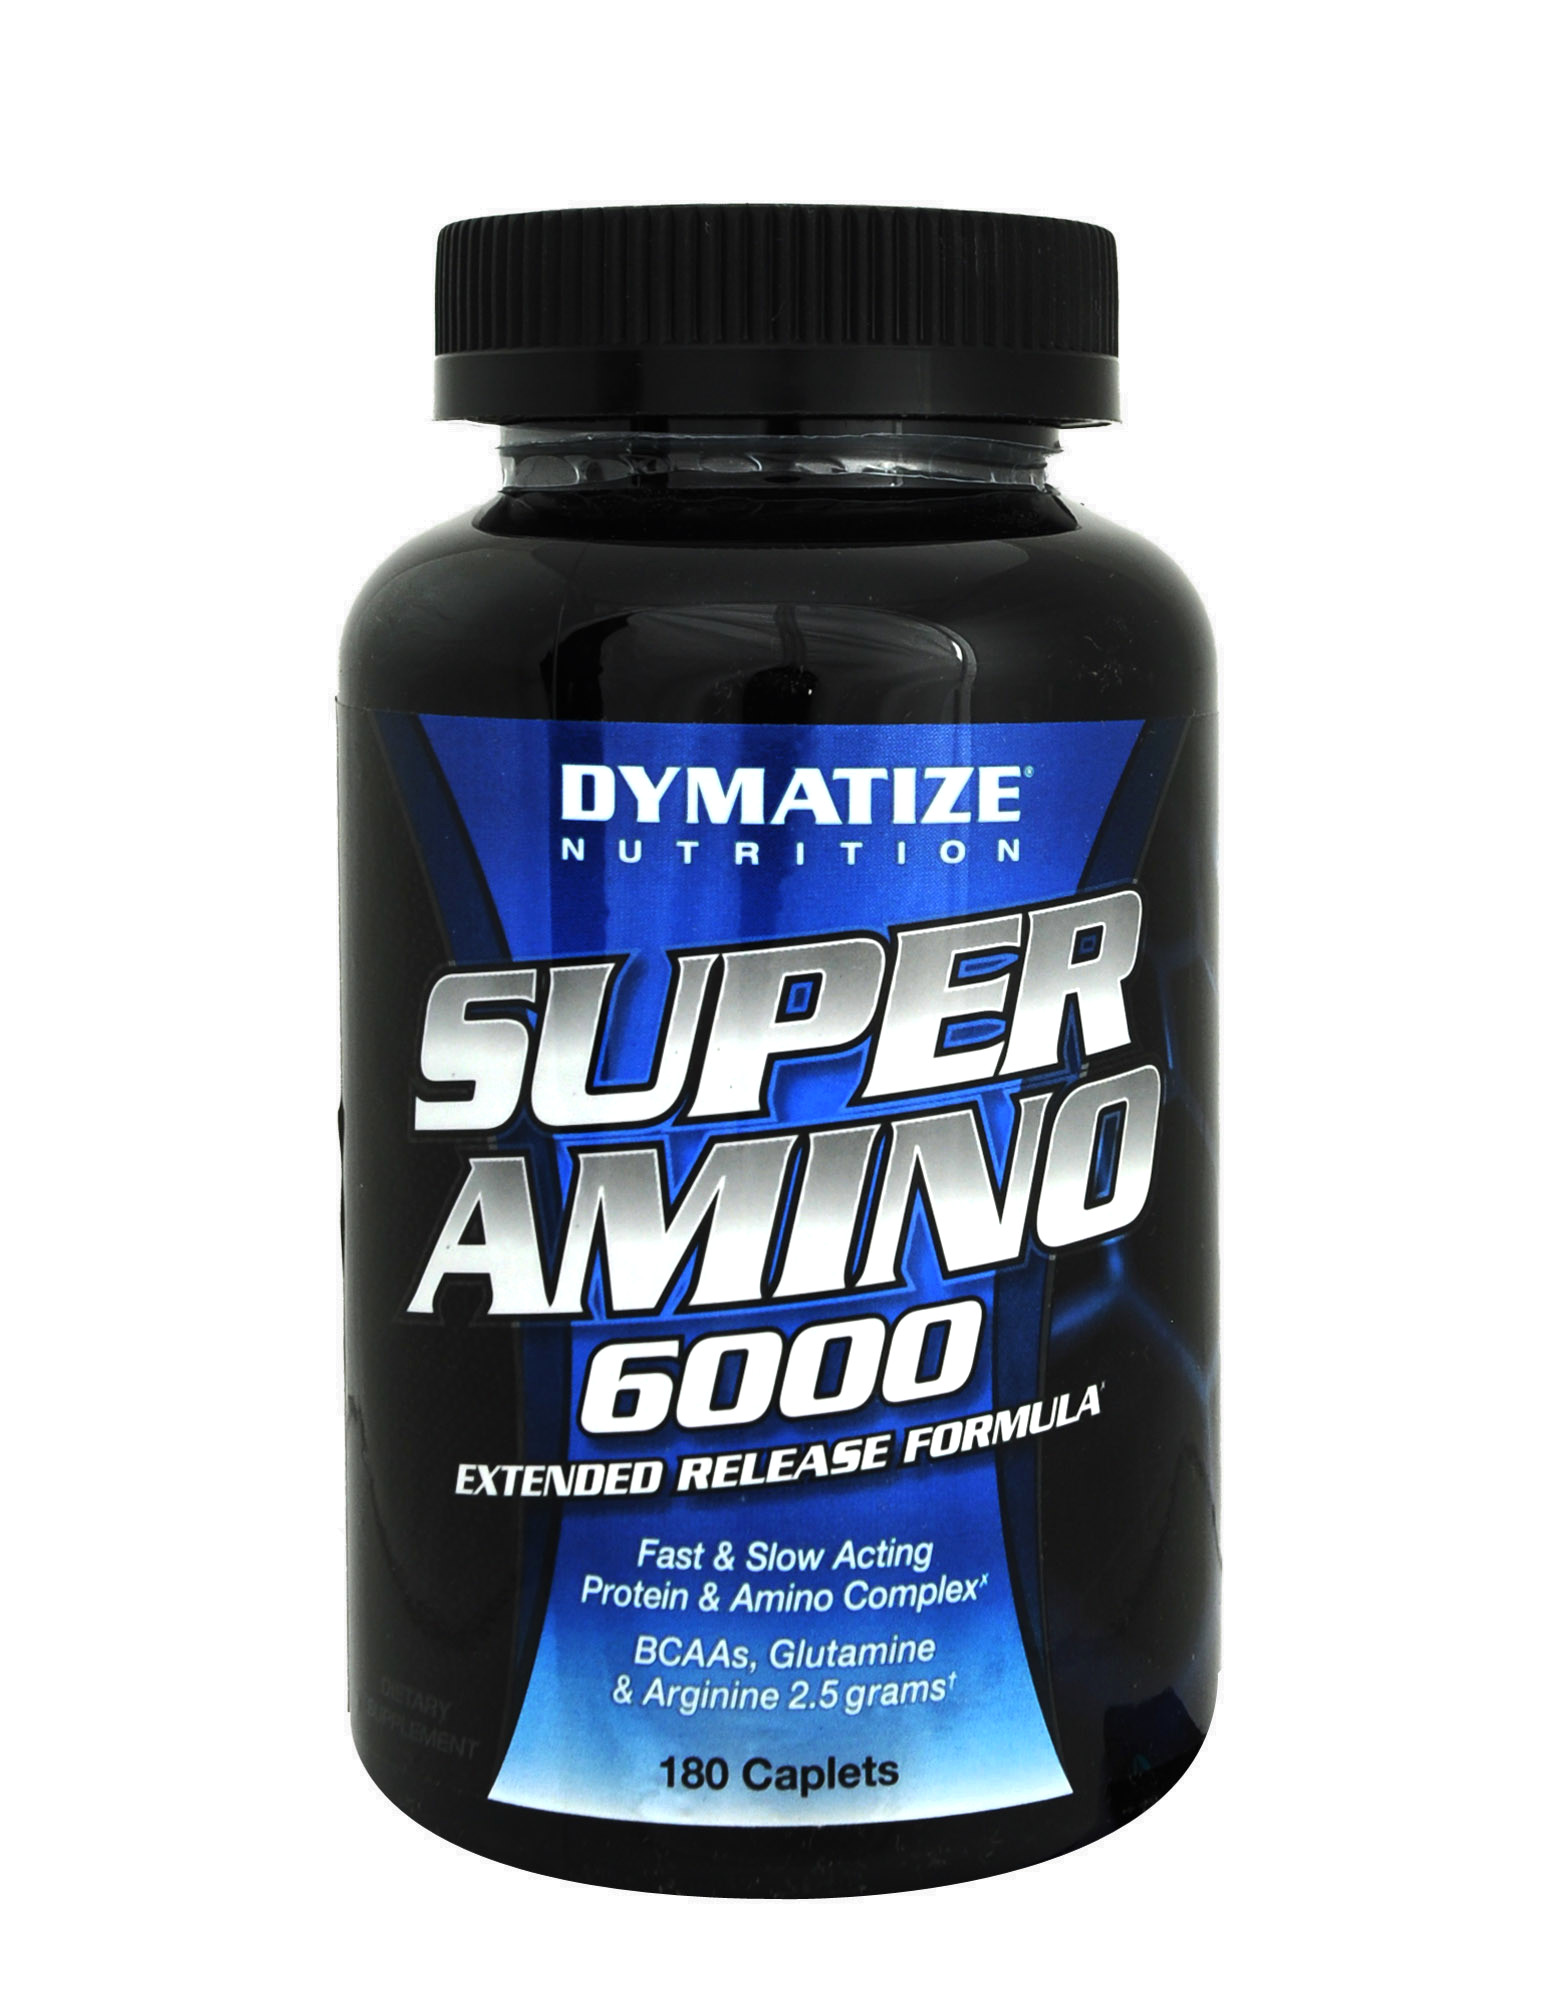 Super Amino 6000 by DYMATIZE (180 tablets)